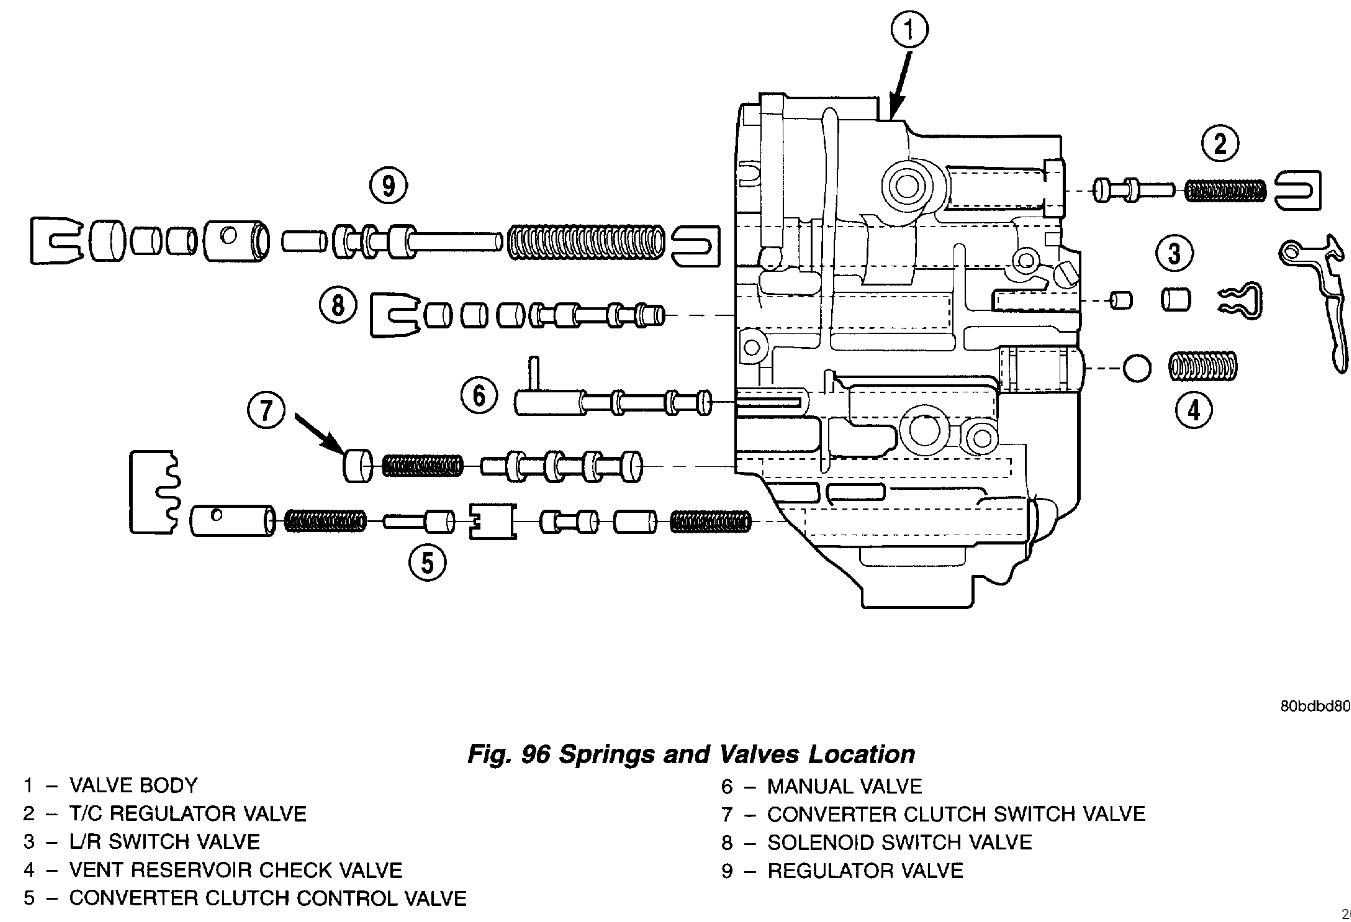 Need Diagram of Valve Body: Replaced Neutral Safety Switch